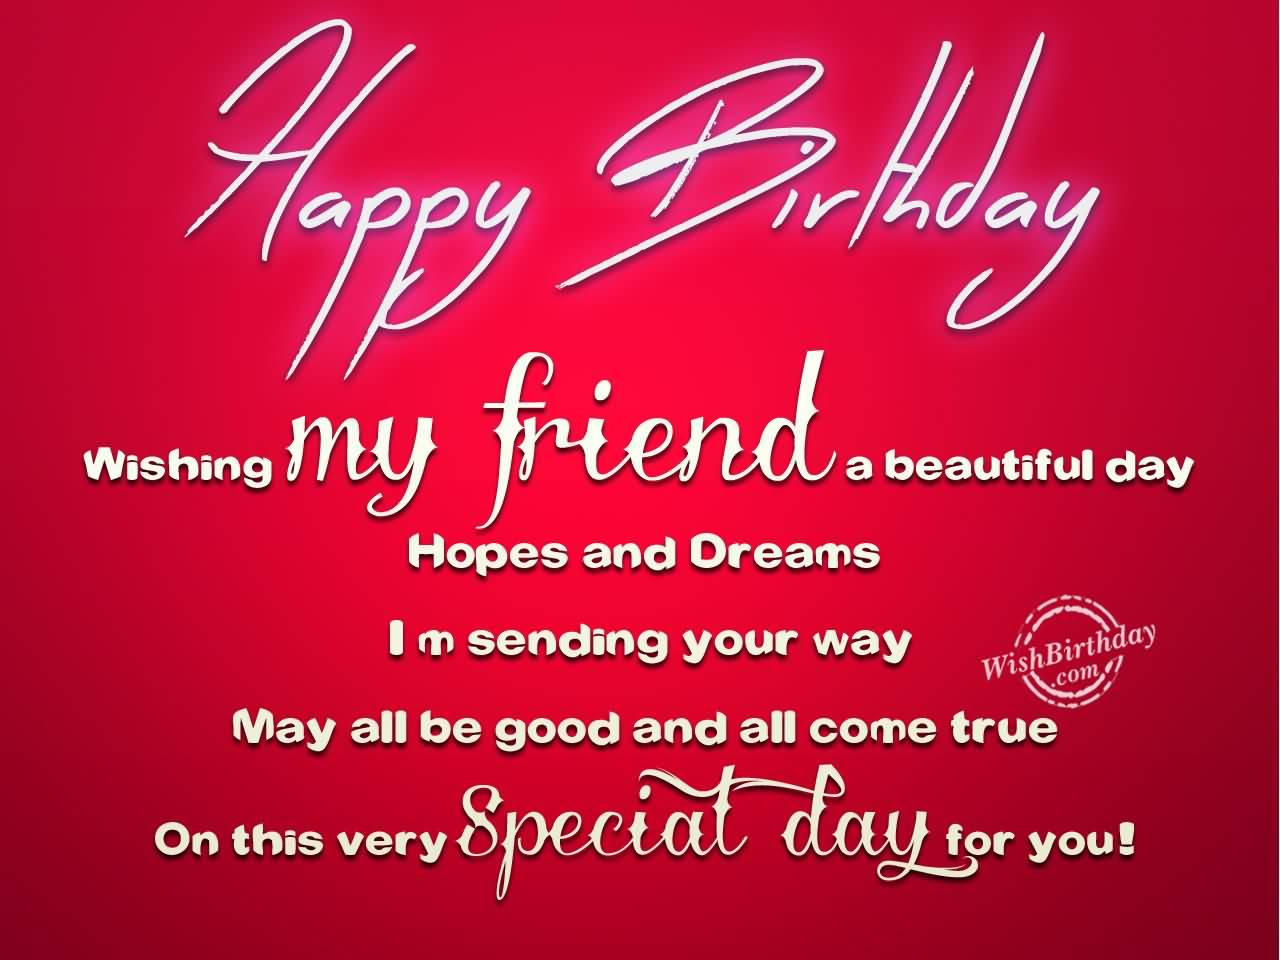 wish a happy birthday to my friend ; Happy-Birthday-Wishing-My-friend-A-Beautiful-Day-Hopes-And-Dream-I-M-Sending-You-Way